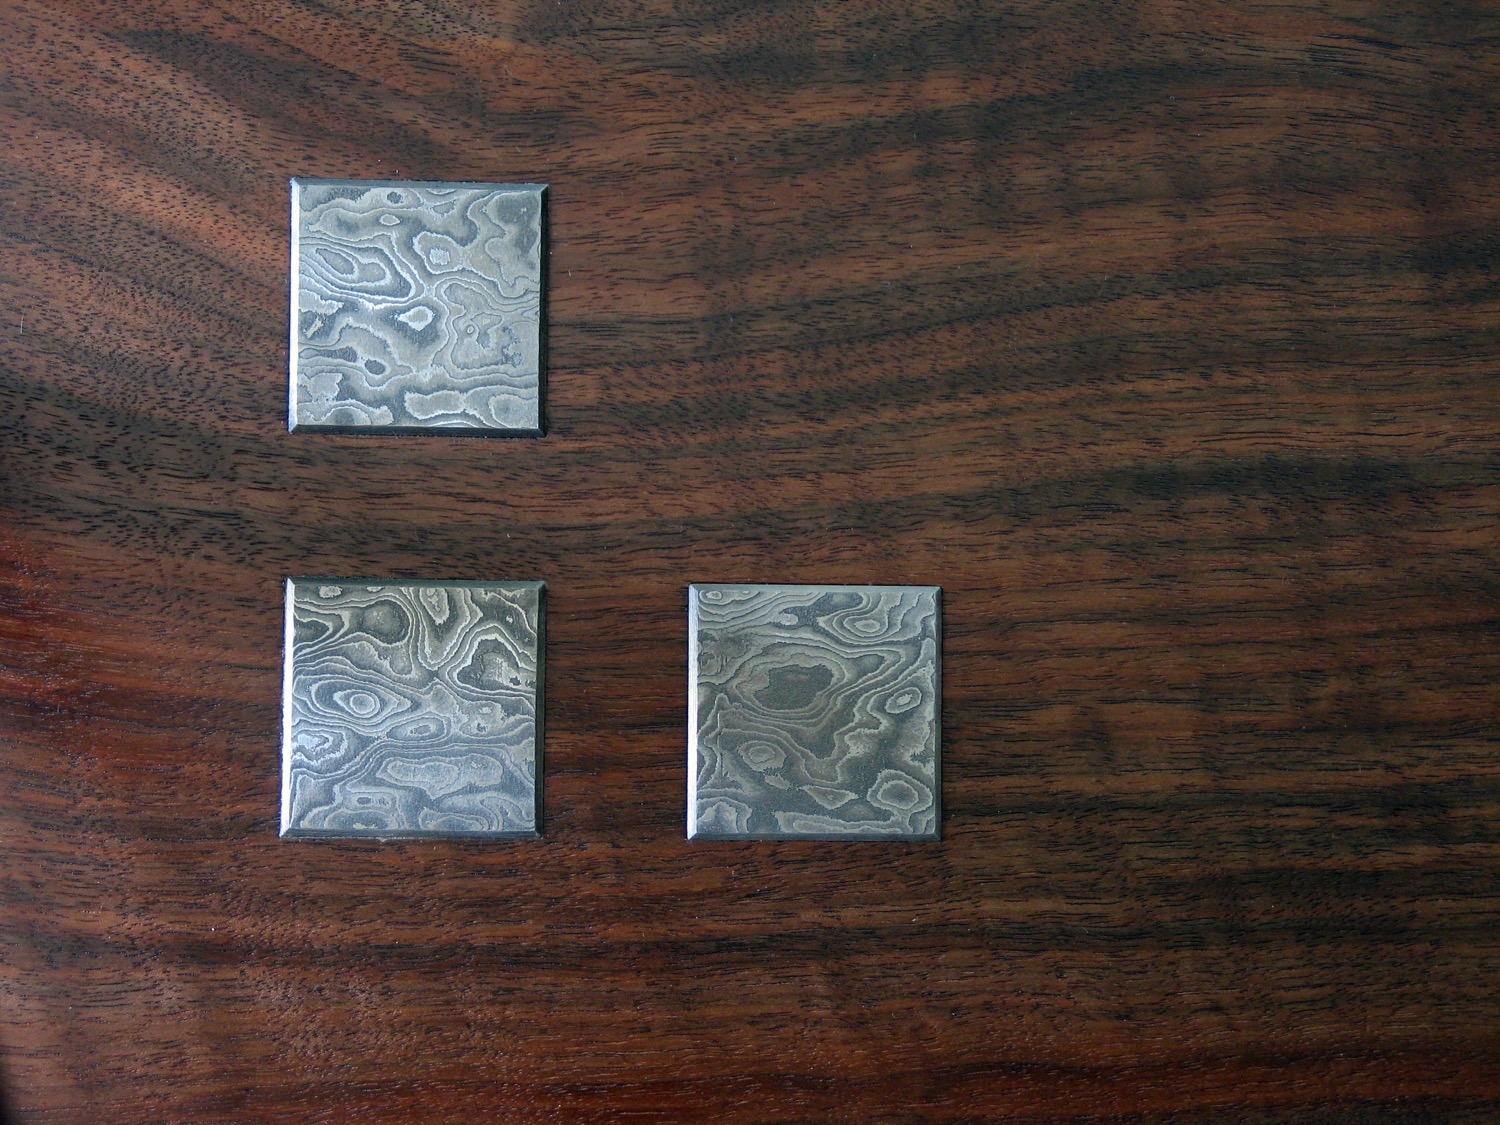 Inlaid Damascus steel medallions on top surface